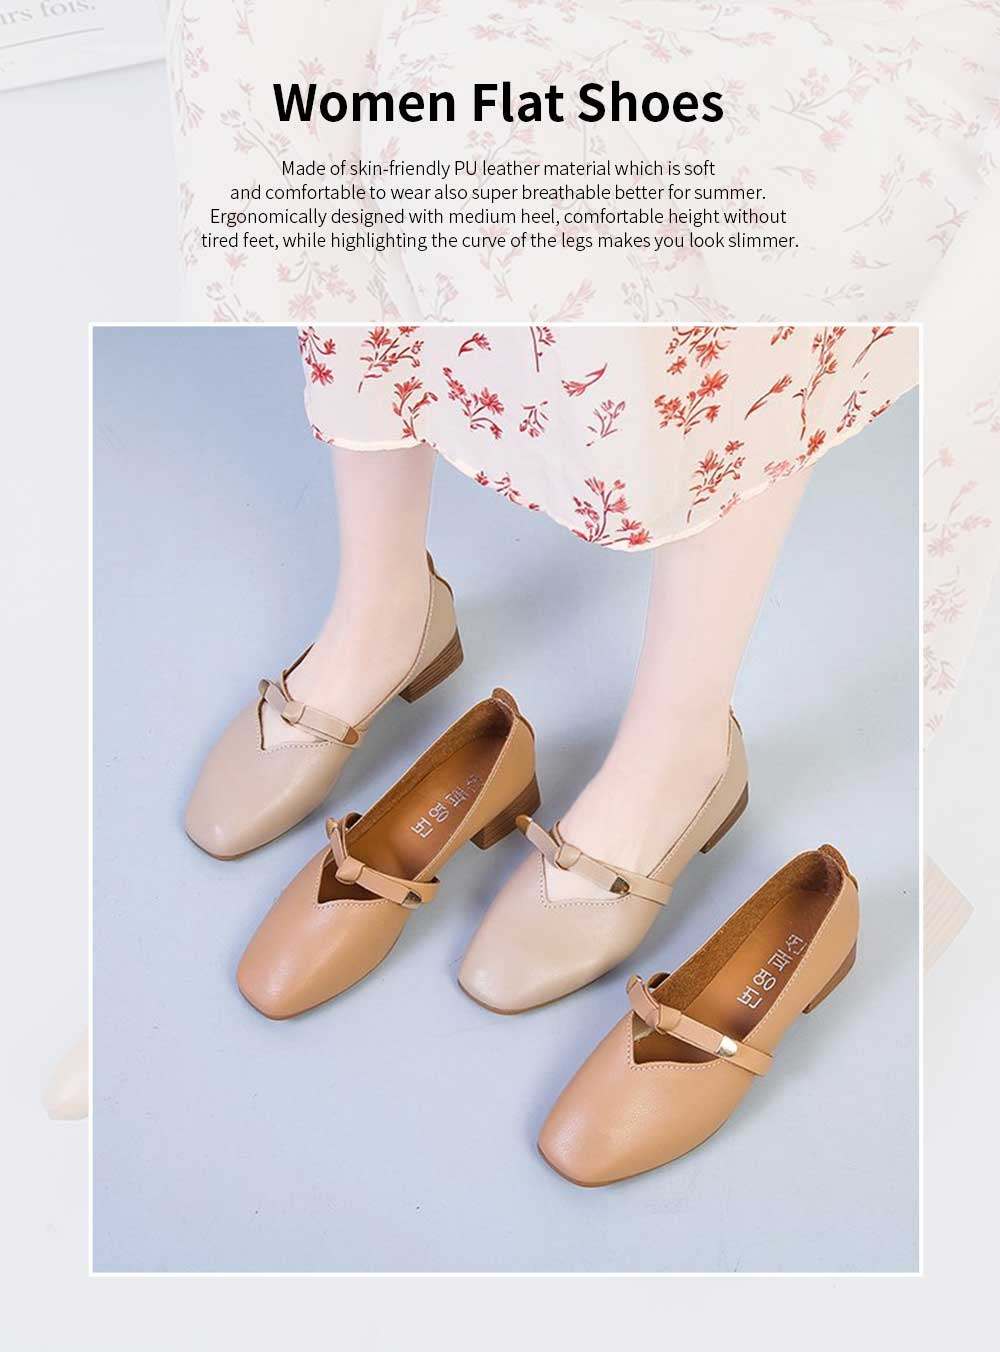 Women's Wide Width Flat Shoes Comfortable Bow Buckle Strap Casual Shoe Mary Jane Square Toe Ballet Flats 0